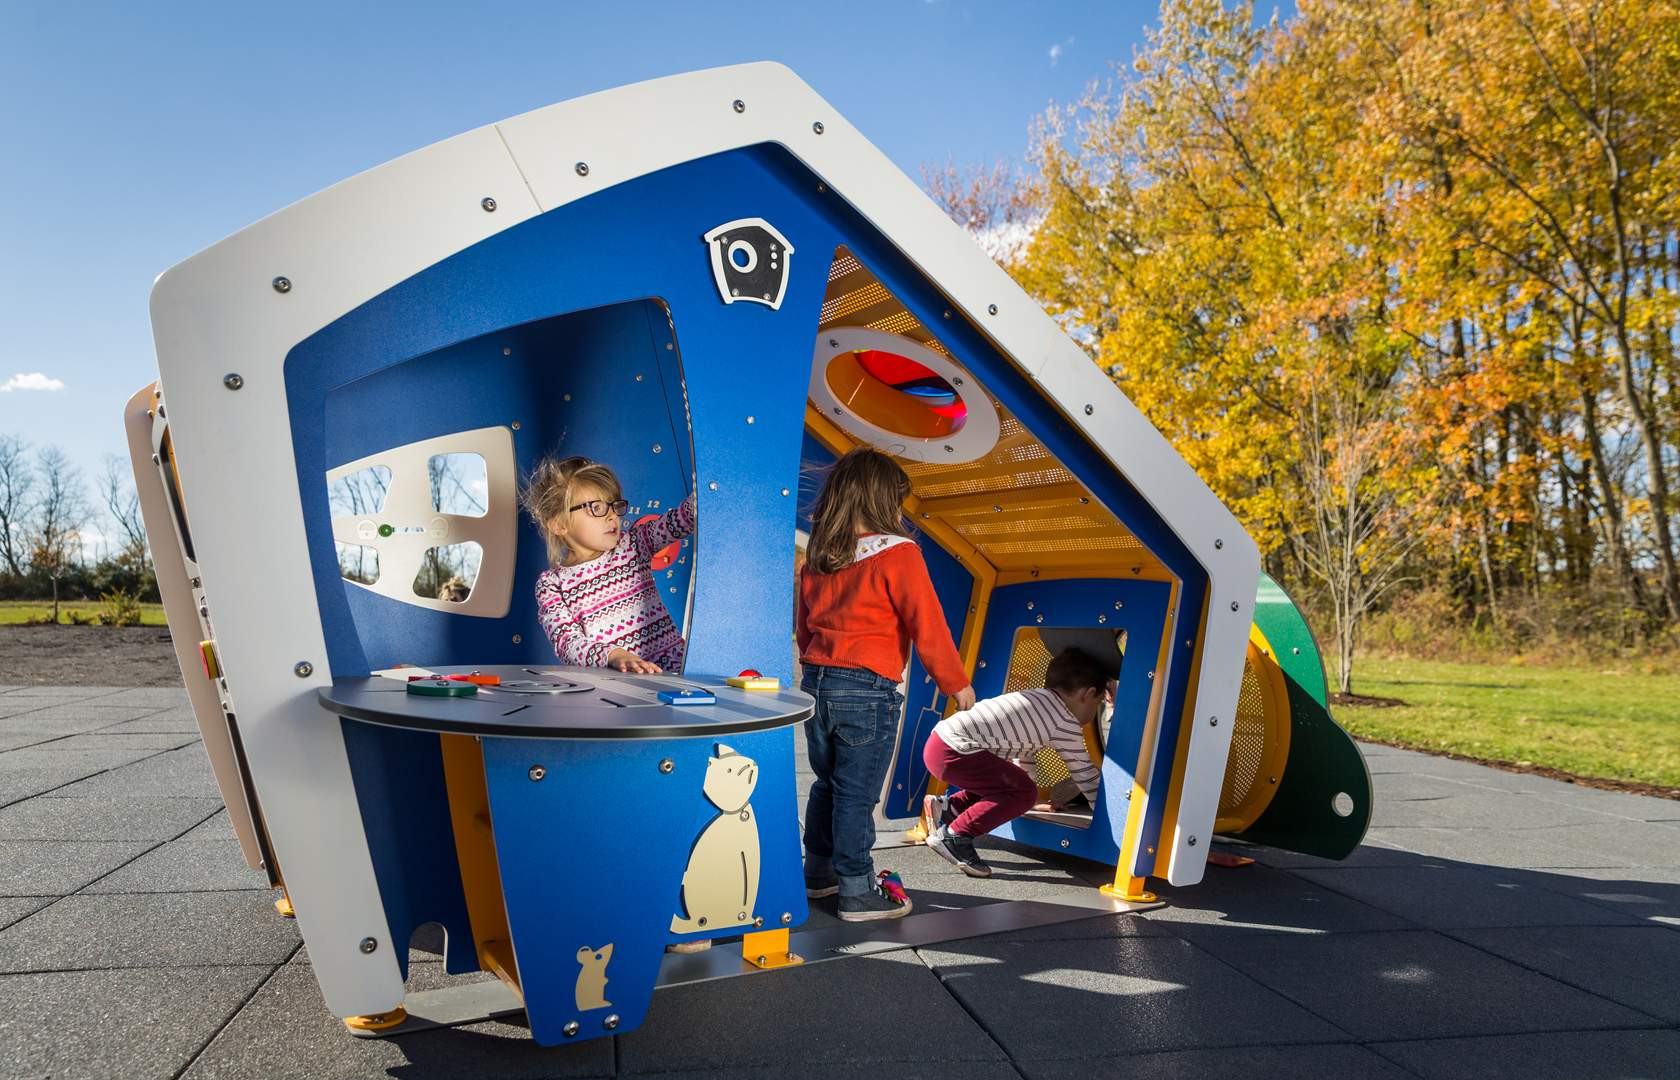 Miracle Recreation Mini City Playhouse